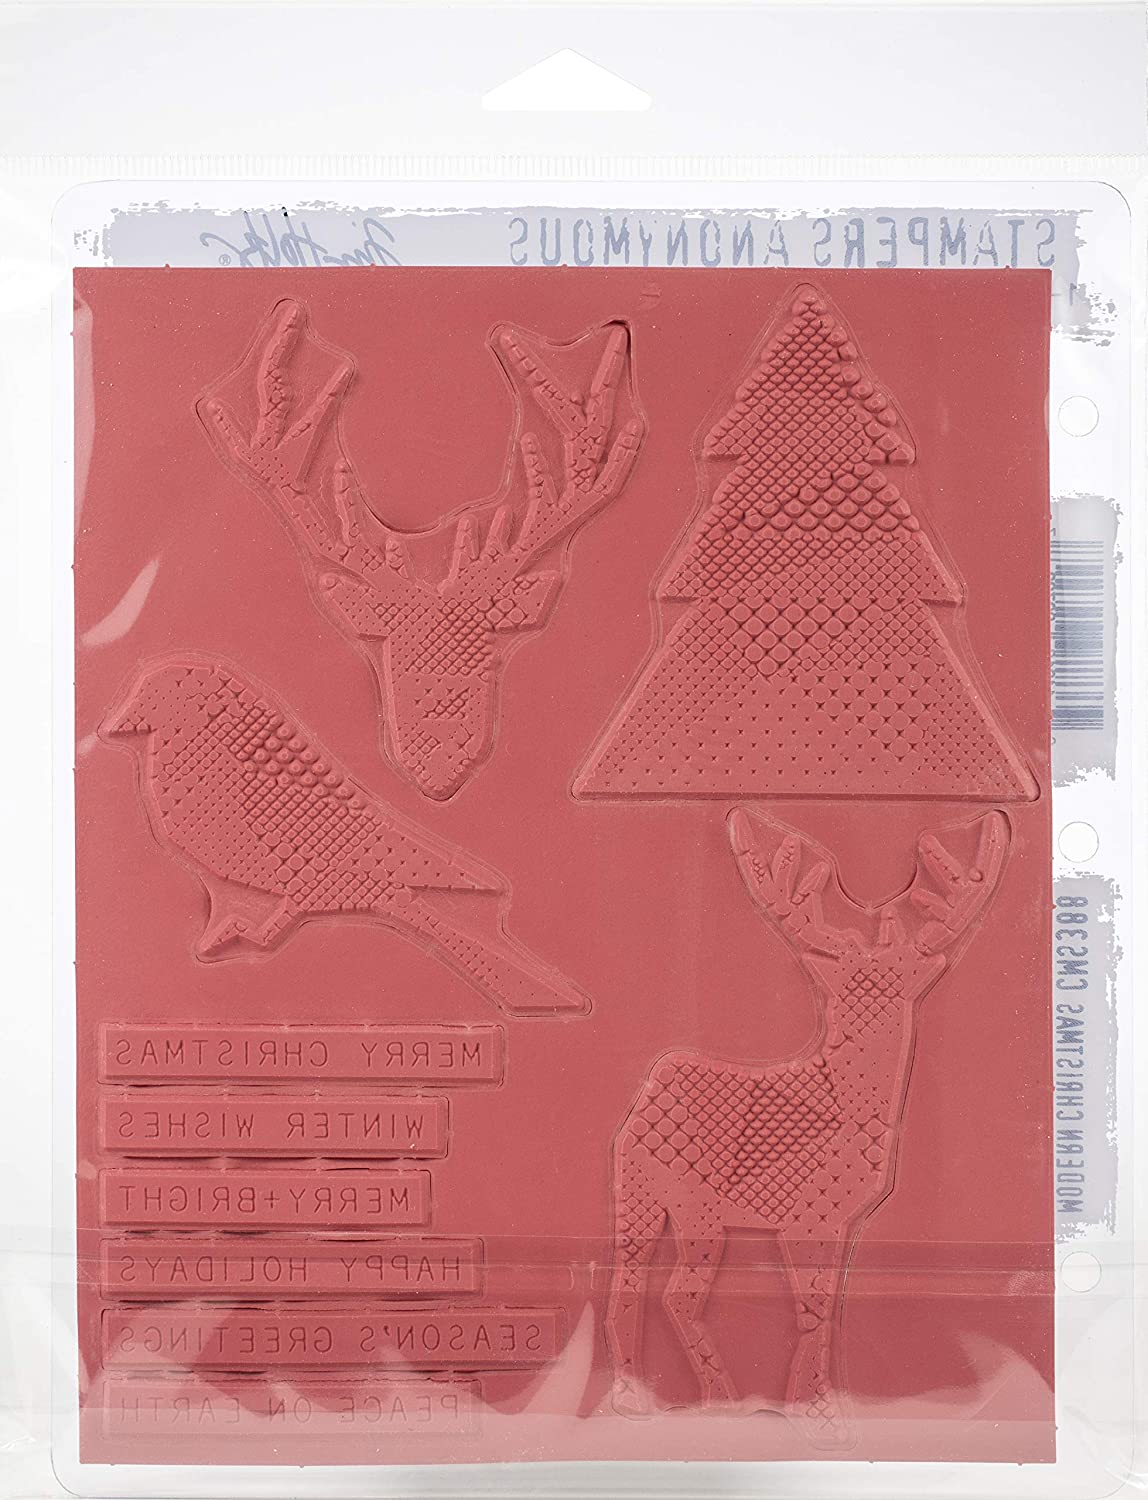 Tim Holtz Modern Christmas Stampers Anon Cling RBBR Stamp Set CMS